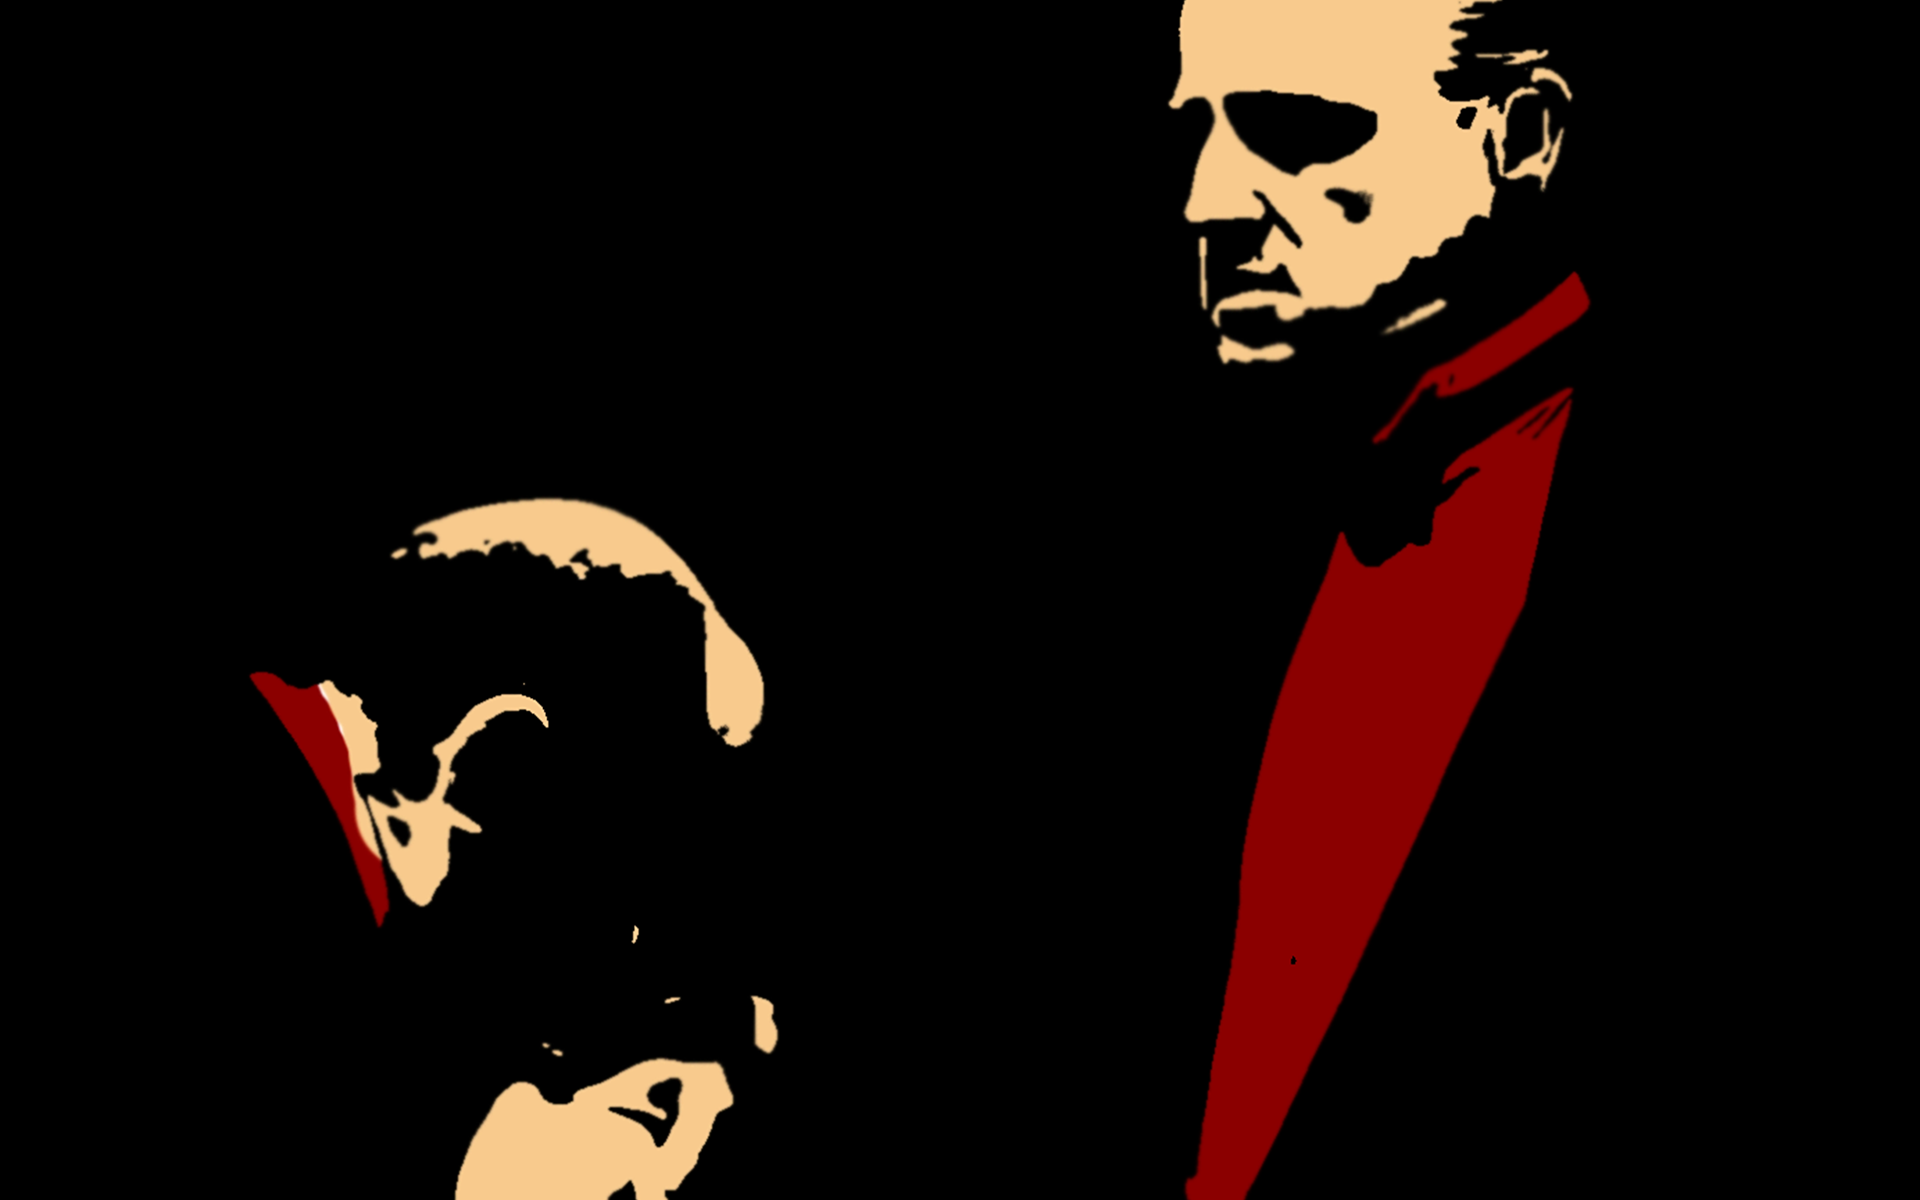 God Father Wallpapers Group   Data-src /full/1445373 - Godfather Background - HD Wallpaper